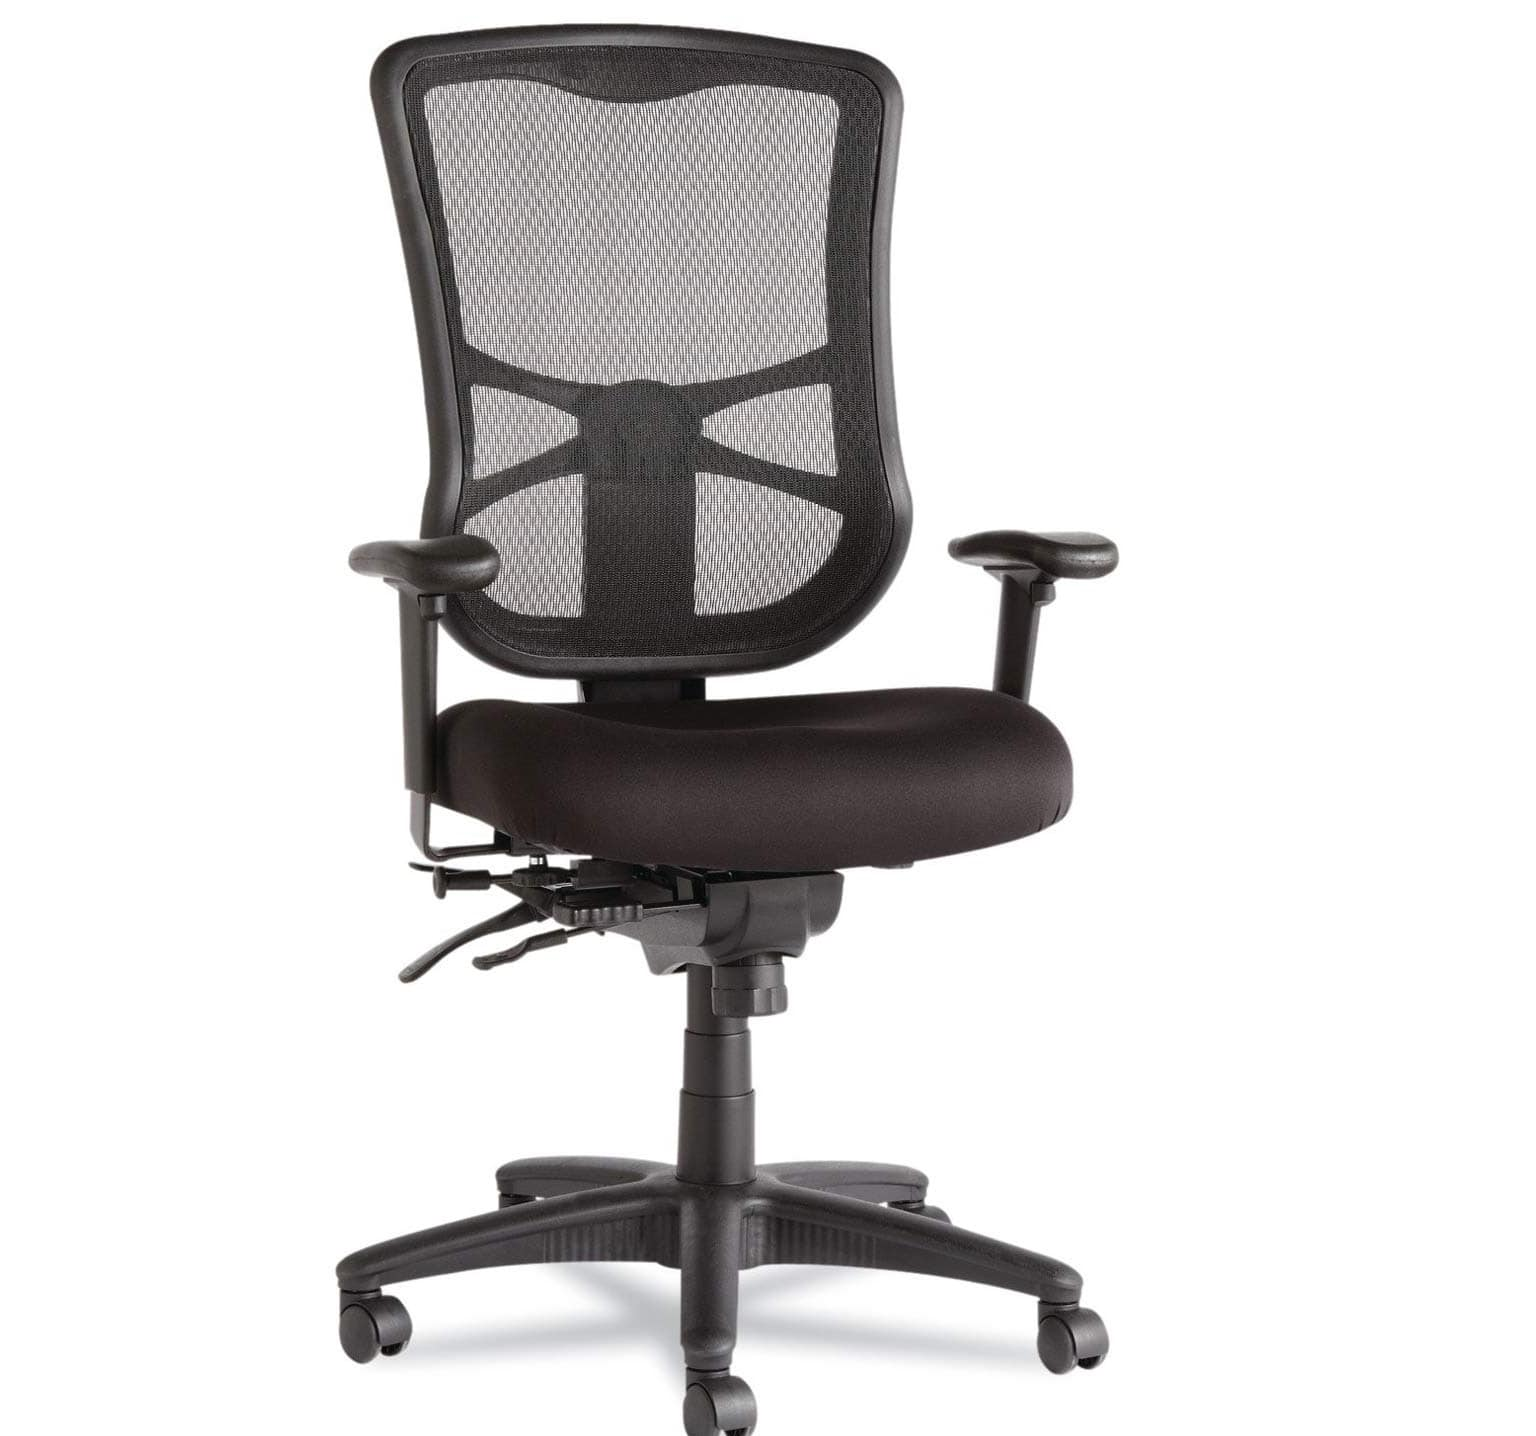 7.Alera Elusion Series Mesh High-Back Multifunction Chair, Black